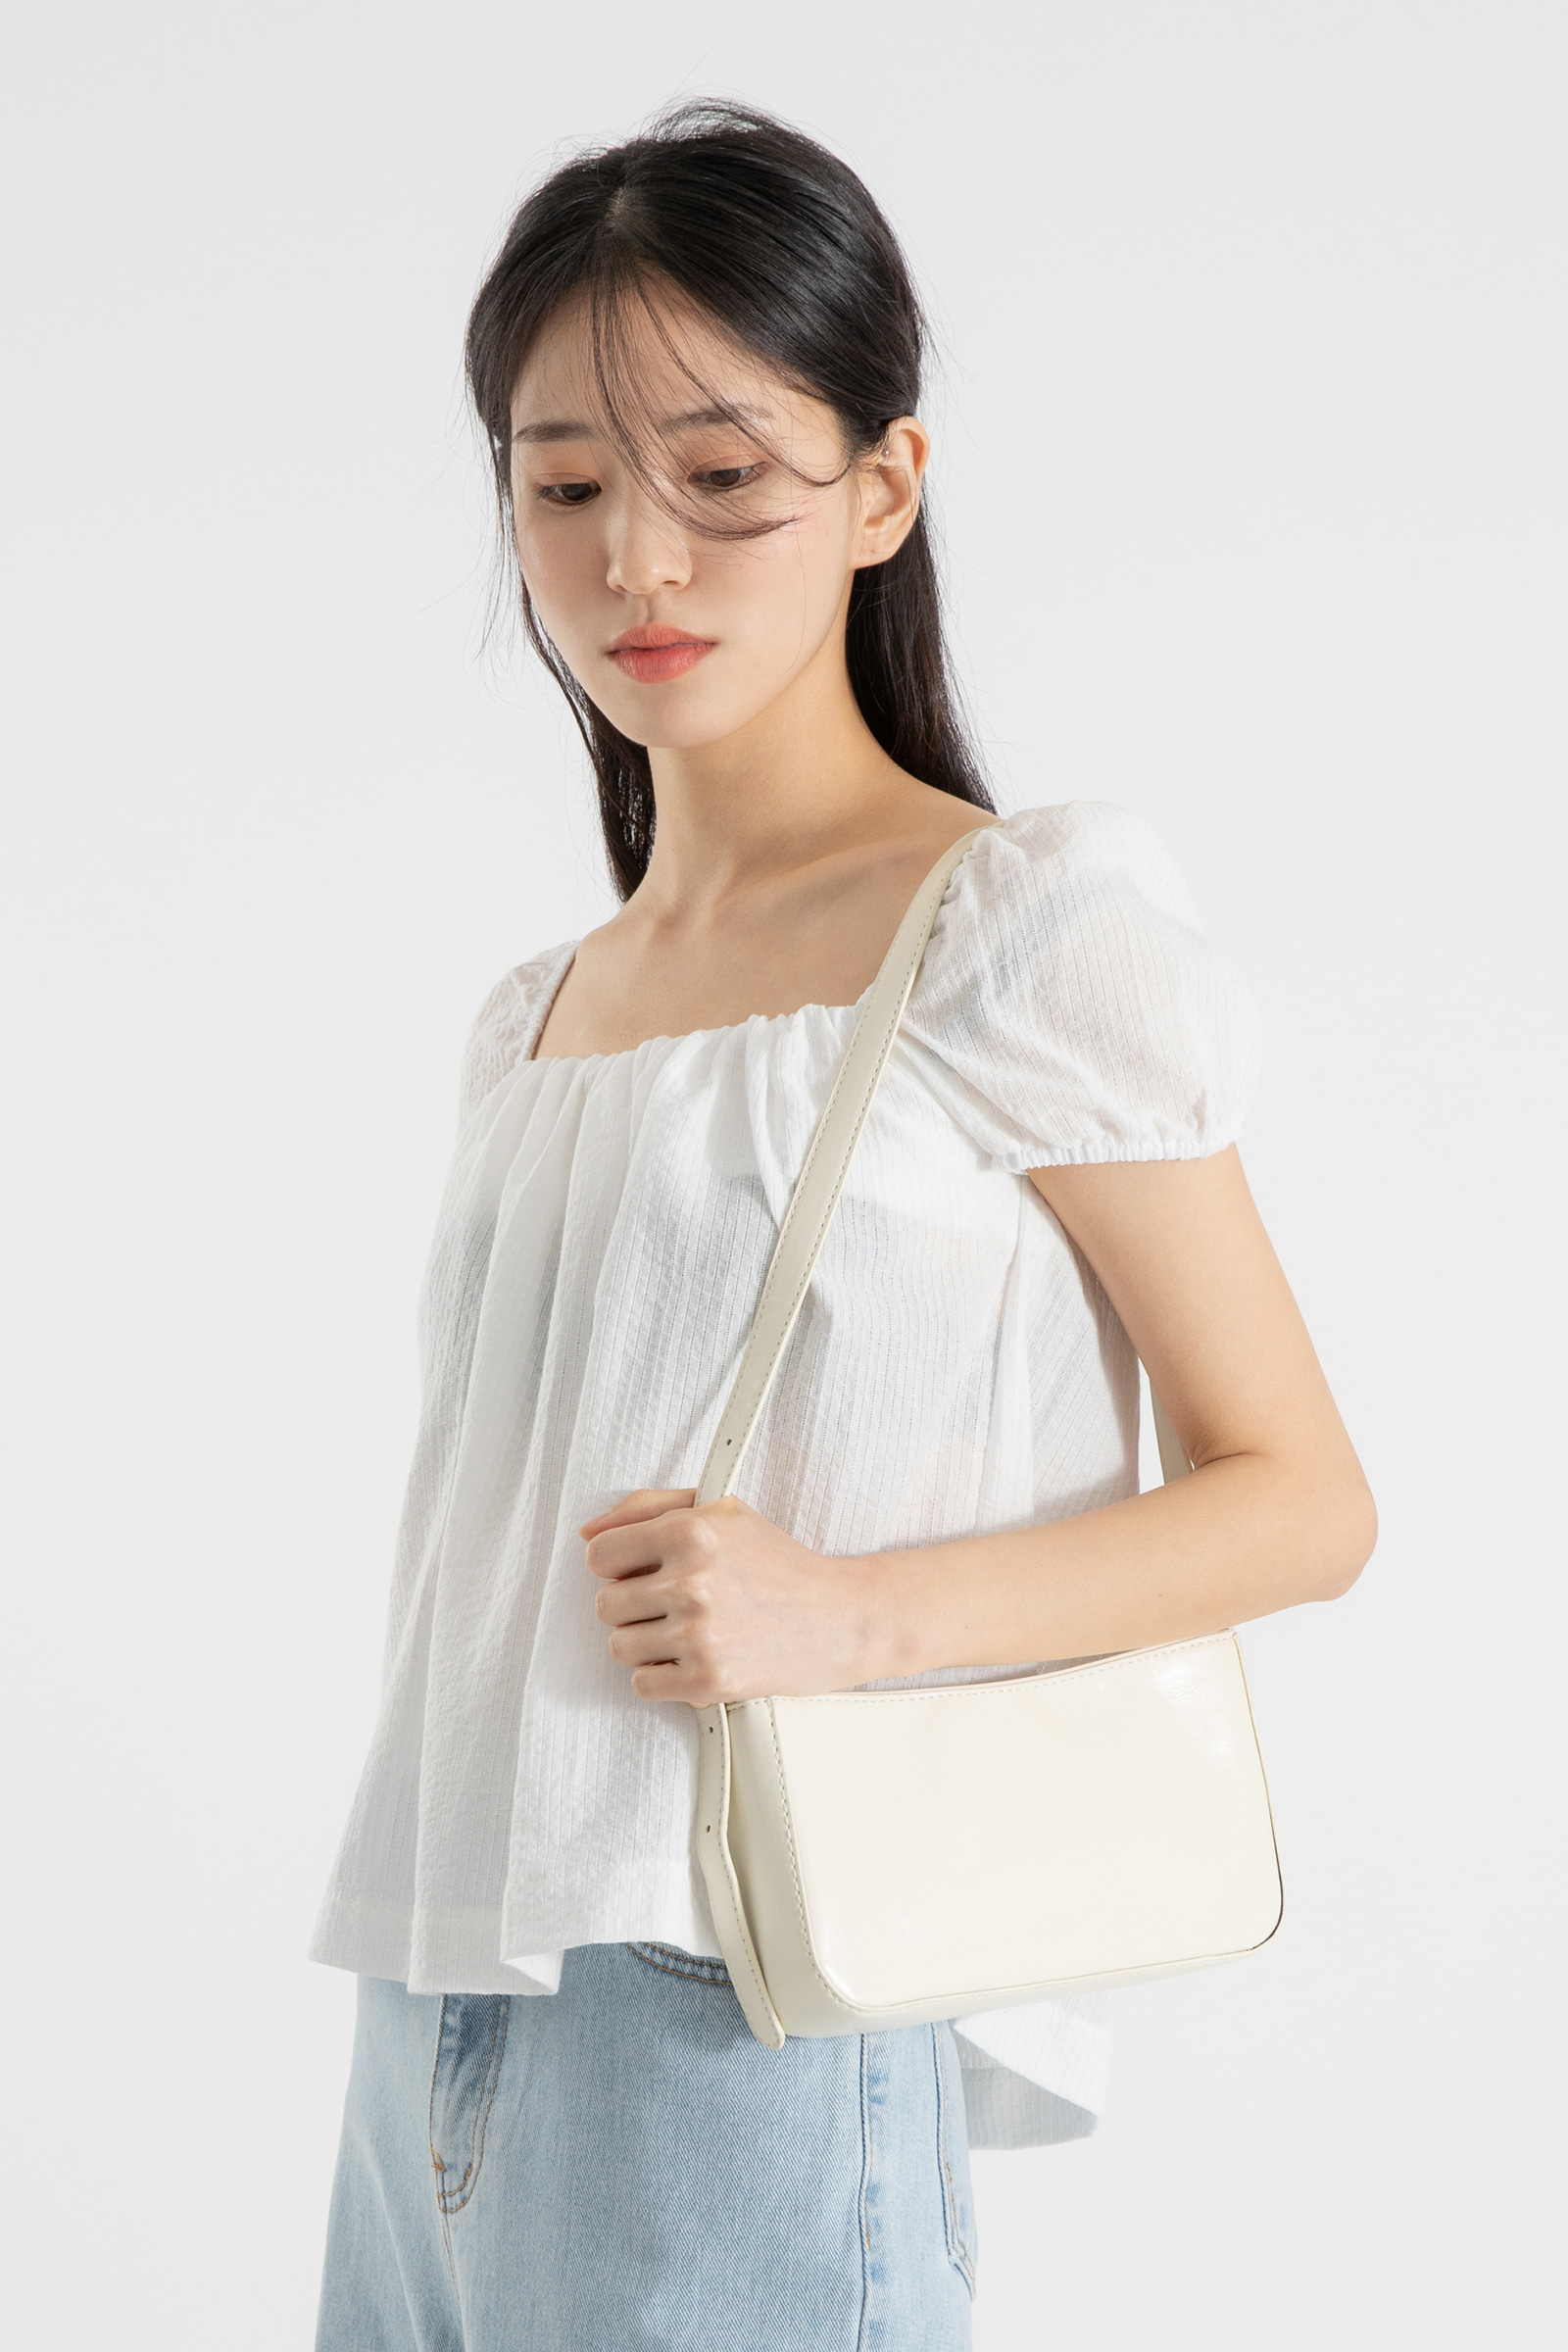 Shine Smooth Skin Saddle Shoulder Bag